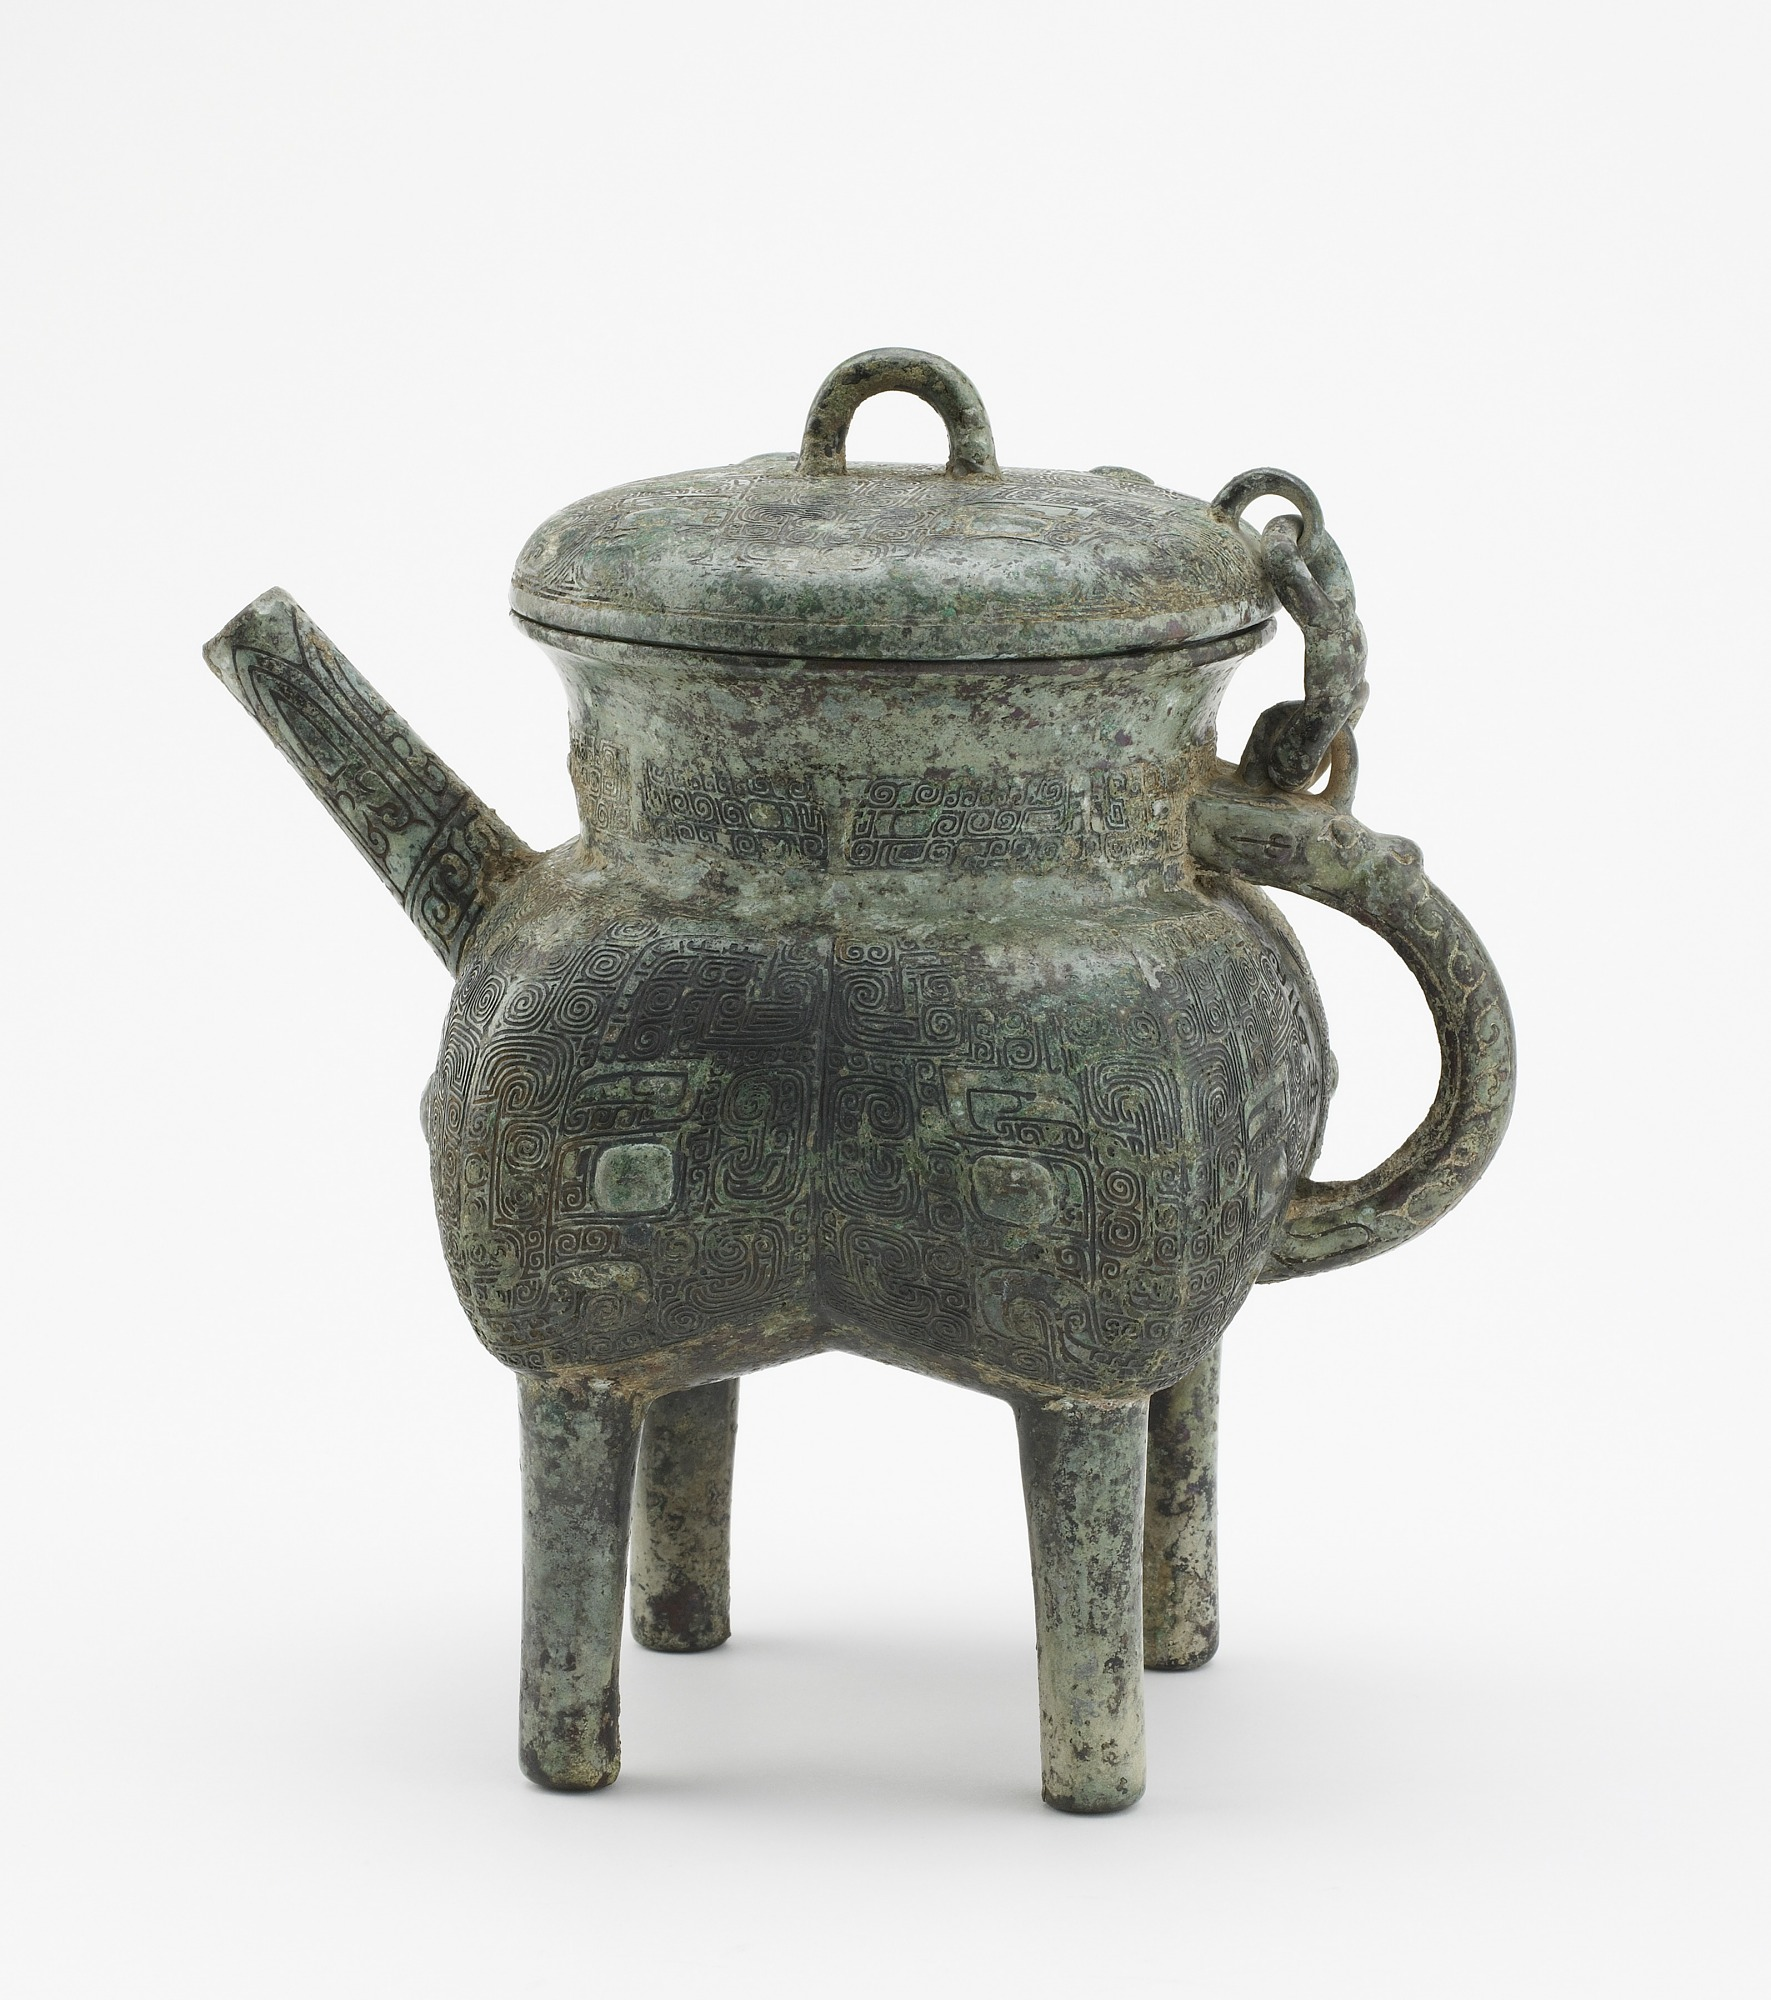 Square lidded ritual ewer (fanghe) with taotie